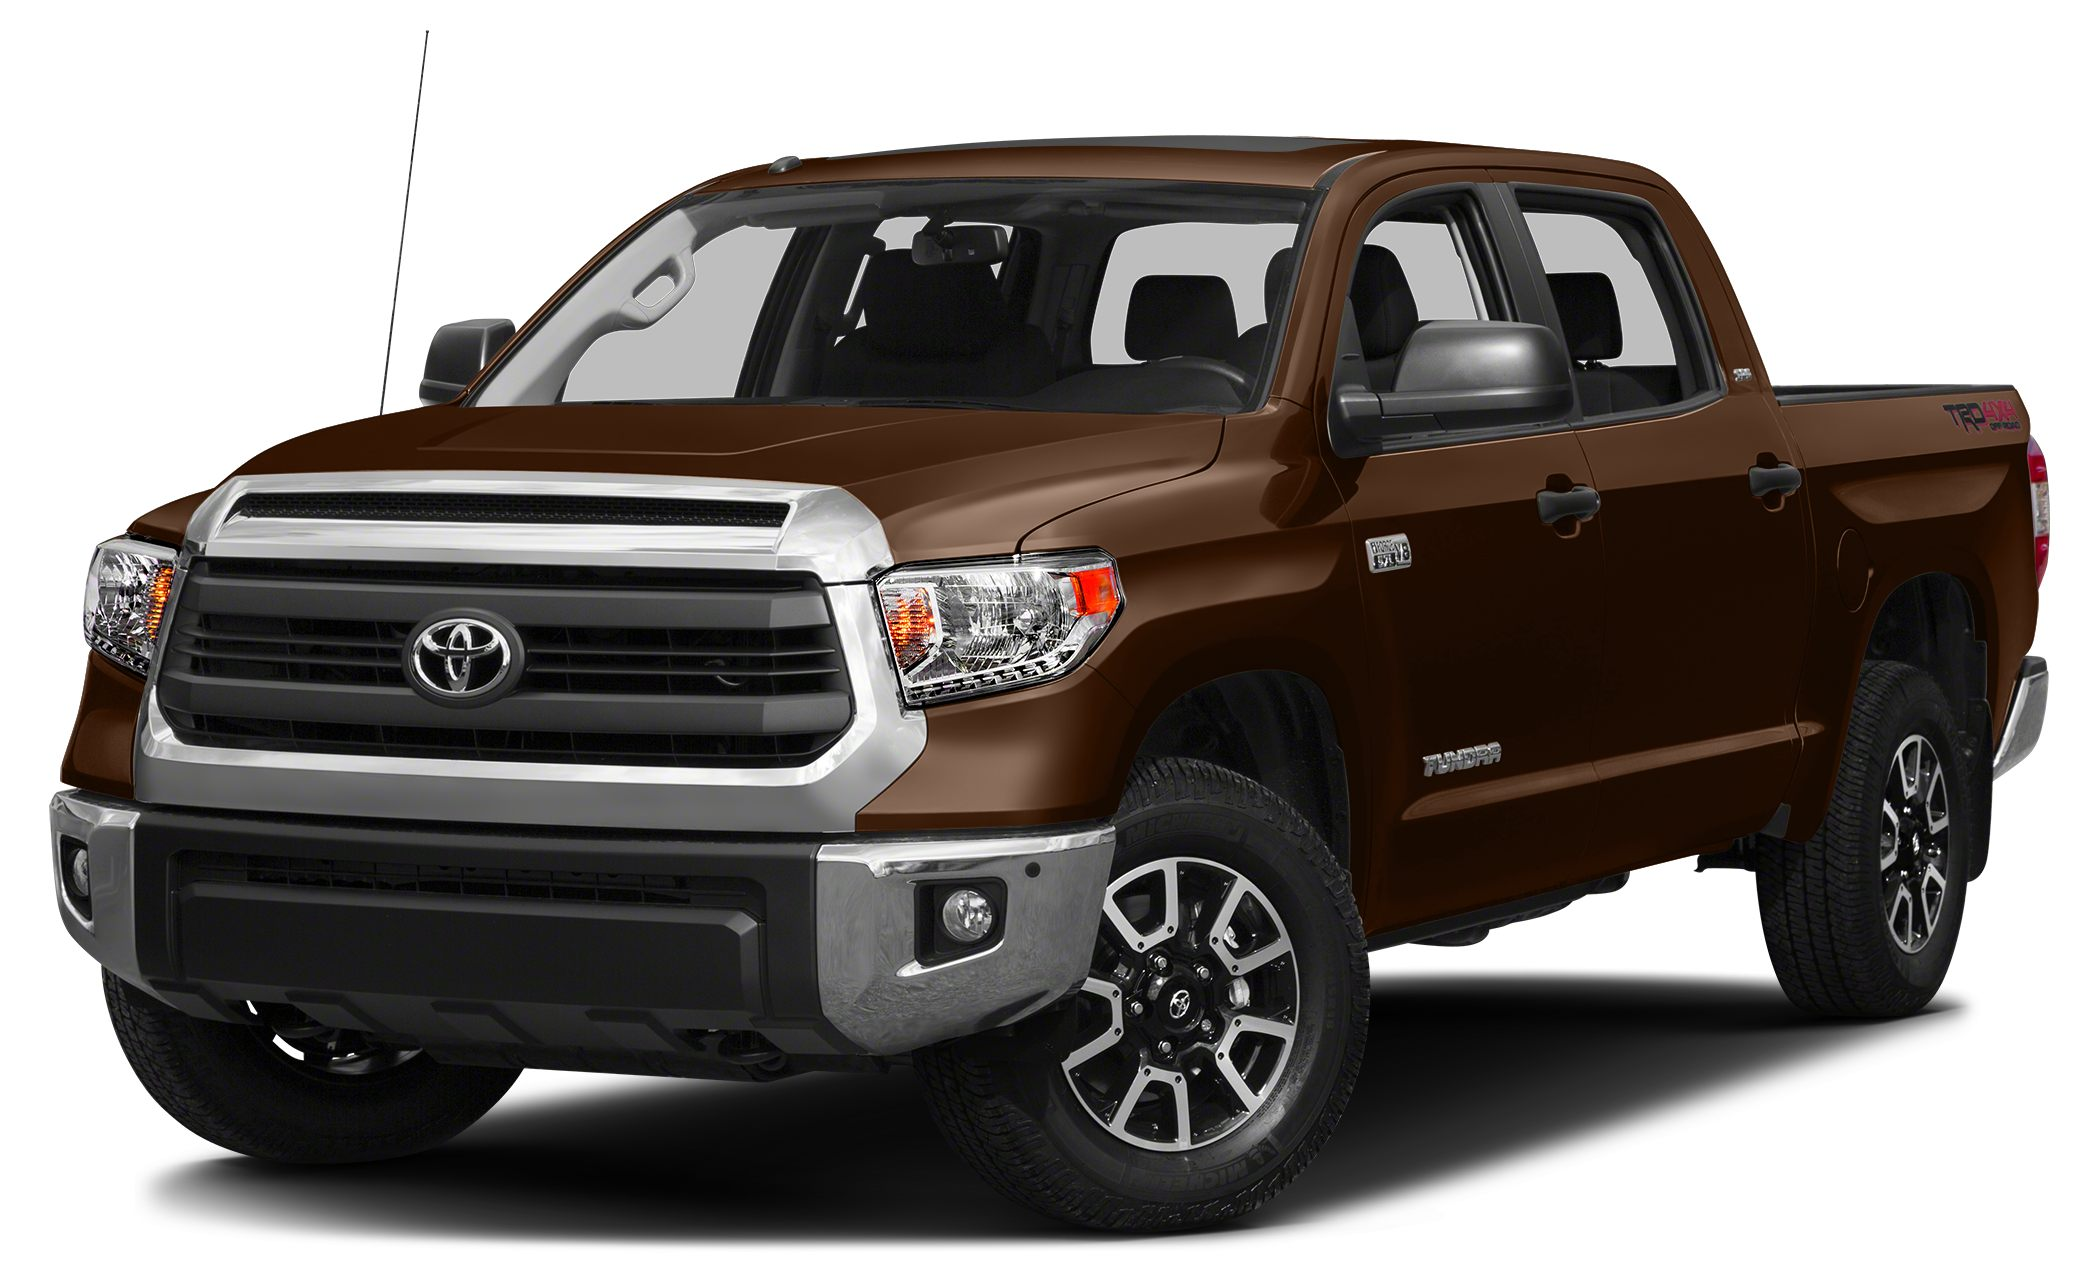 2015 Toyota Tundra SR5 All prices plus tax title license  doc fee 395 with approved credit